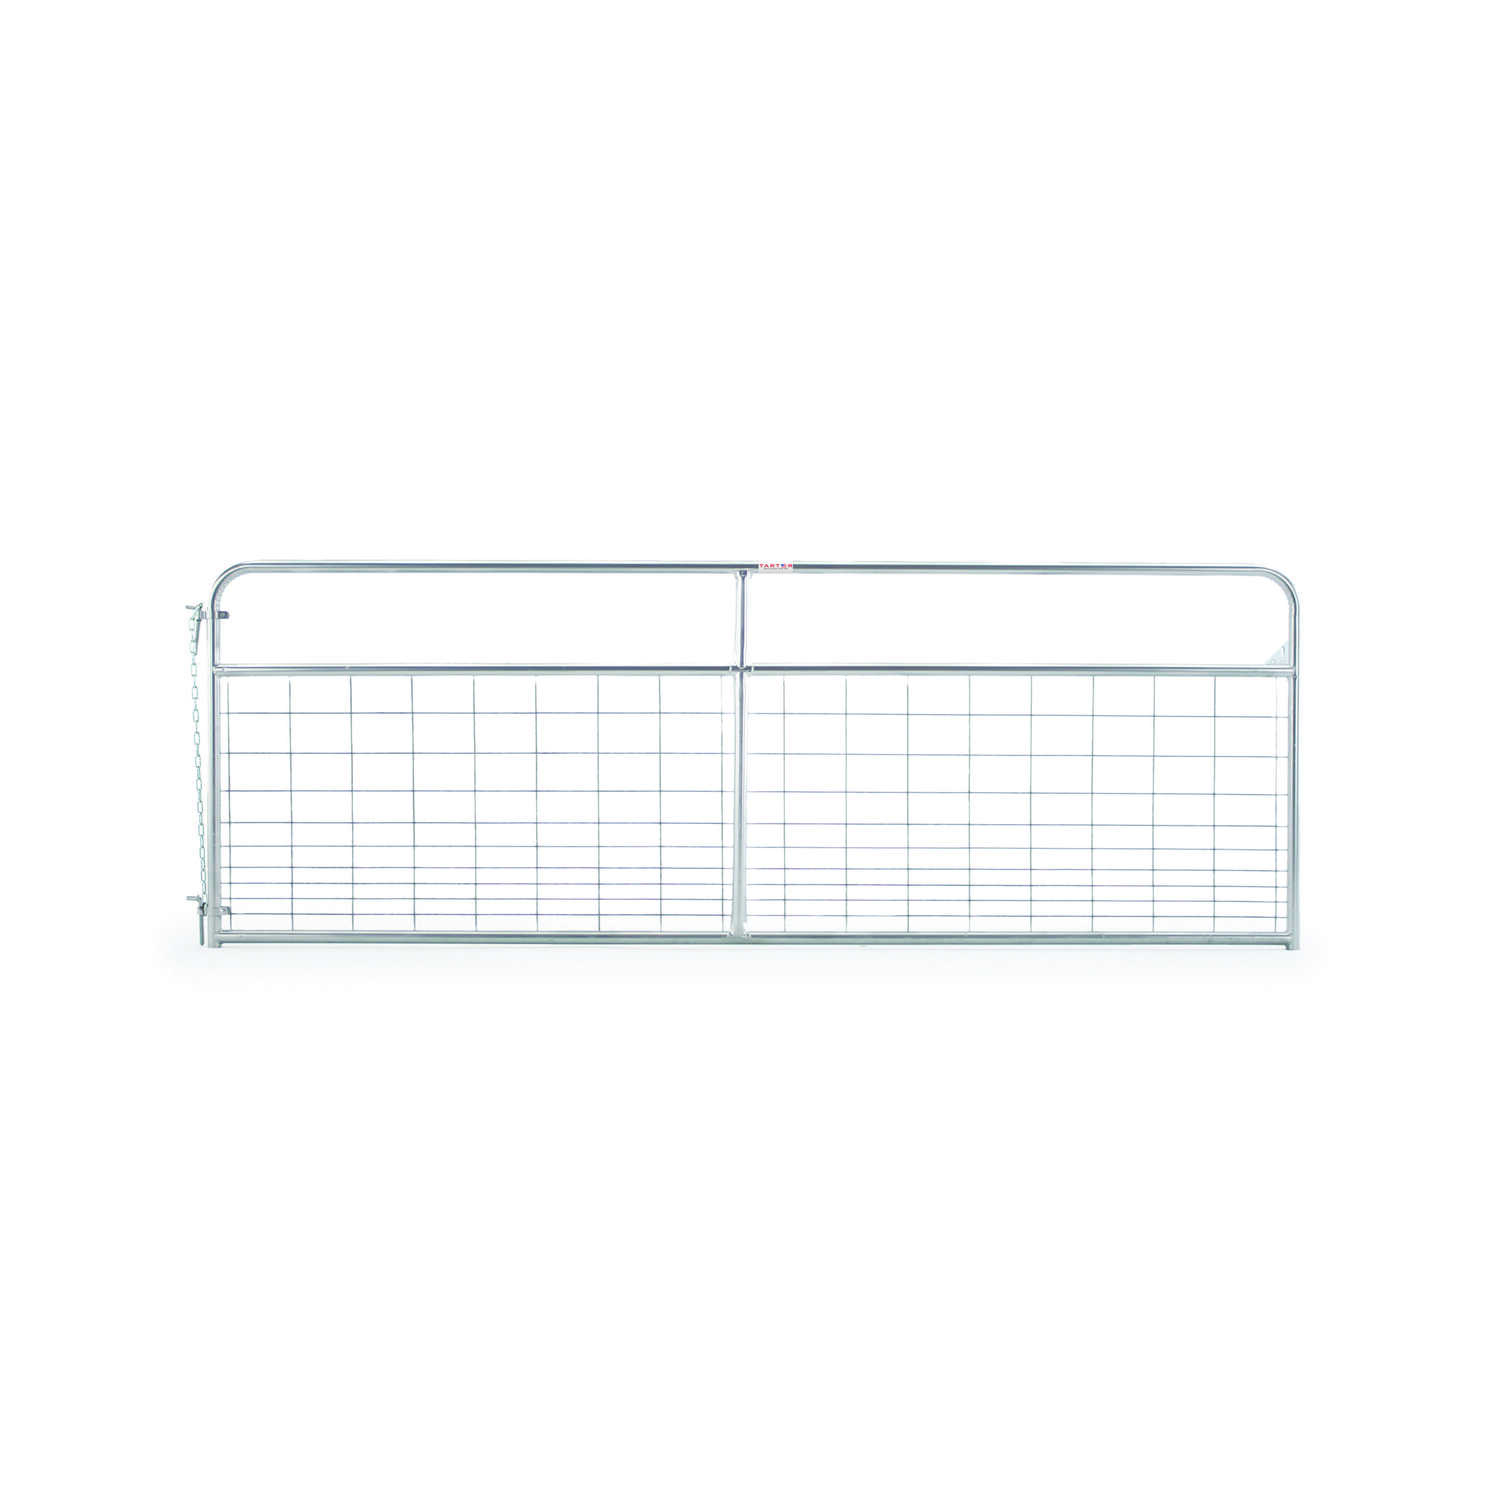 Tarter  50 in. H x 1.75 in. W x 12 ft. L Galvanized Steel  Wire Filled Gate